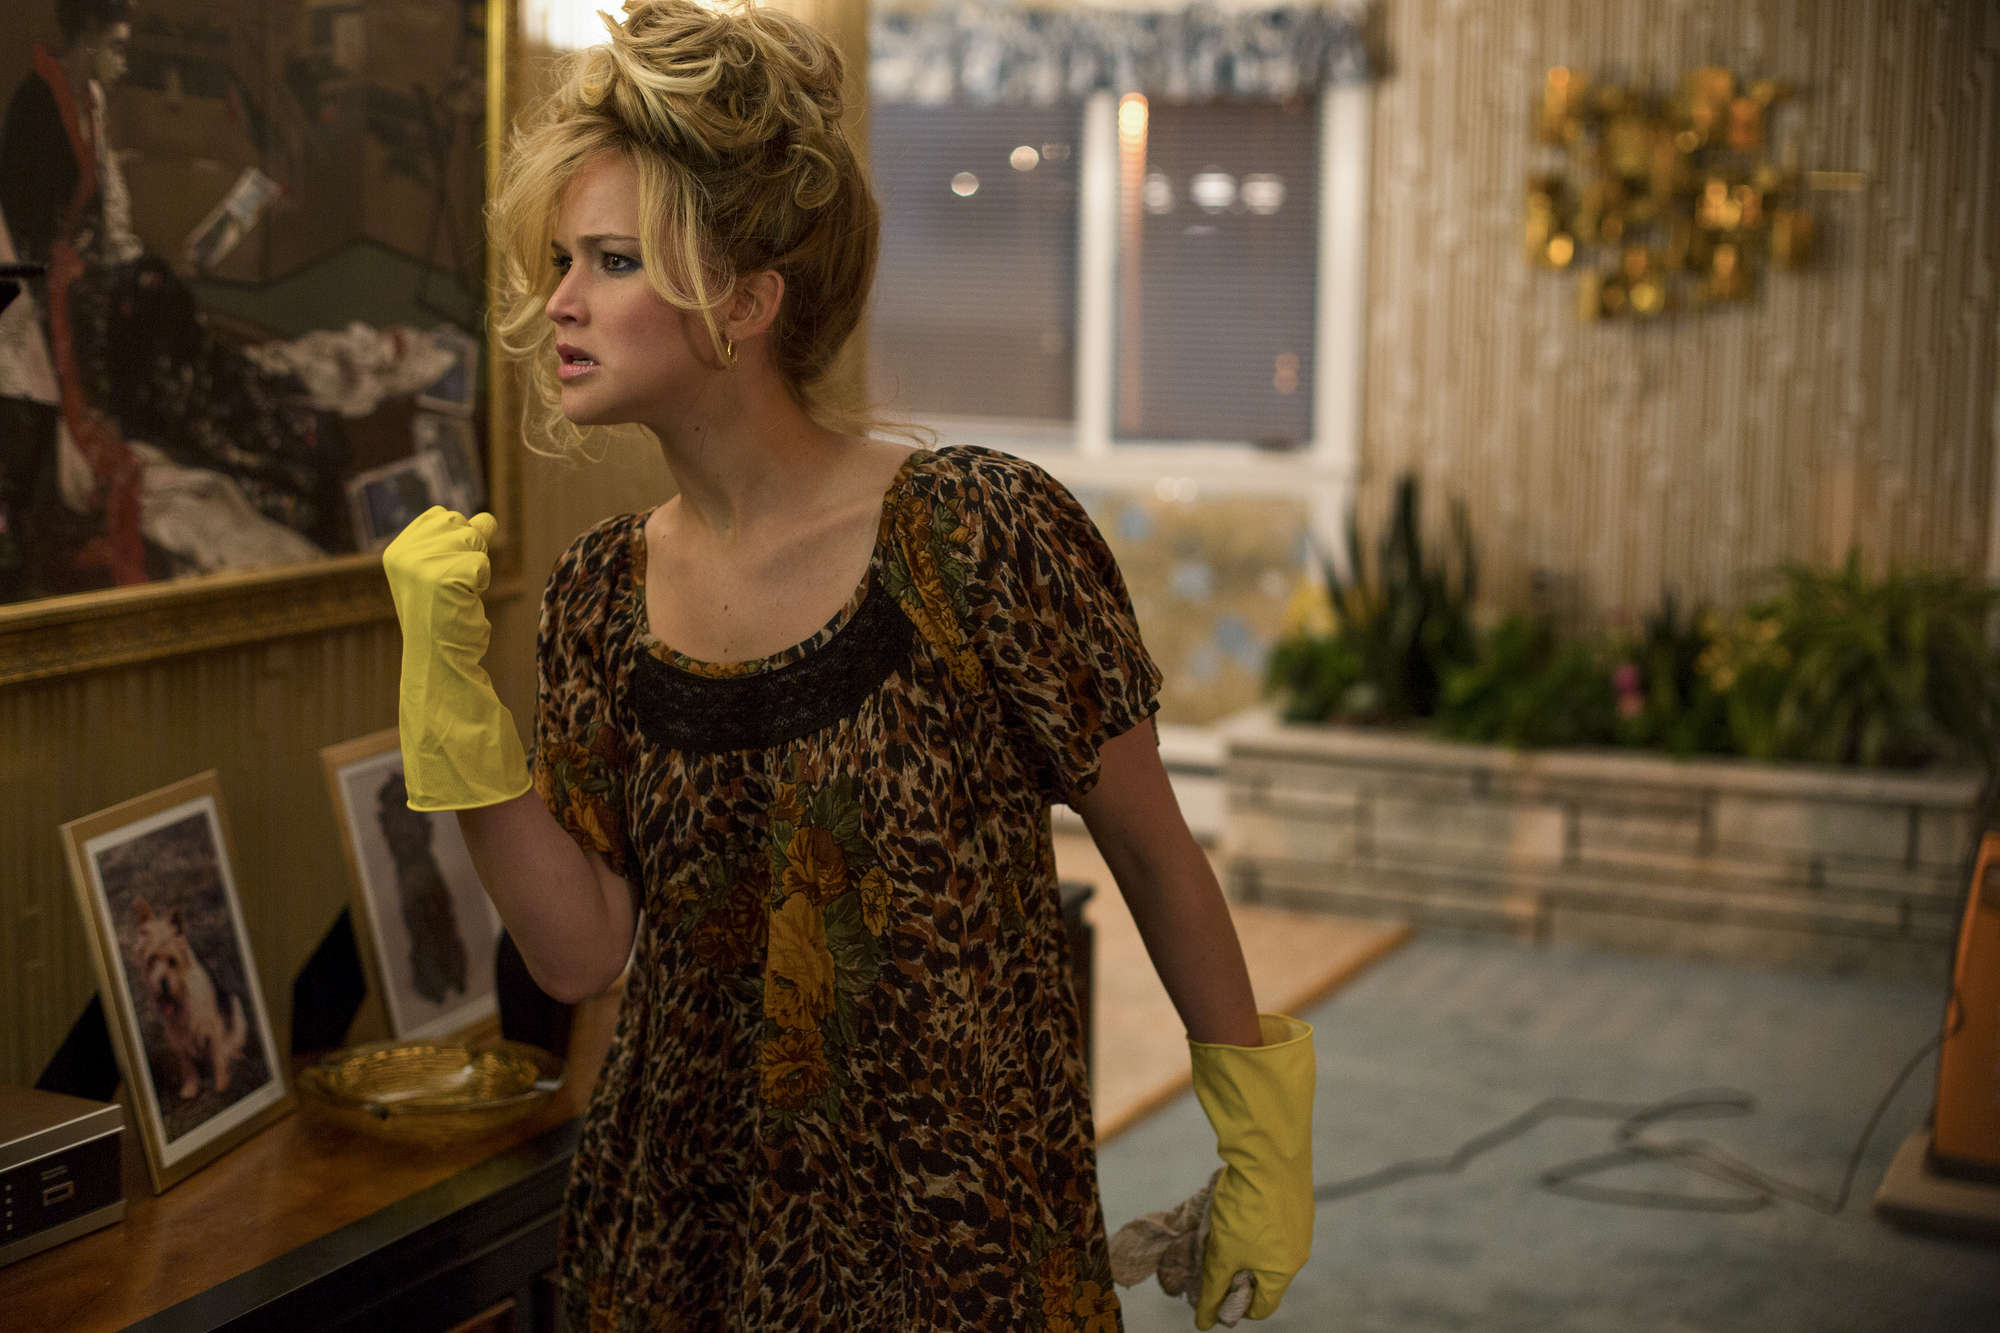 http://www.gotceleb.com/wp-content/uploads/celebrities/jennifer-lawrence/american-hustle-stills/Jennifer-Lawrence:-American-Hustle--04.jpg